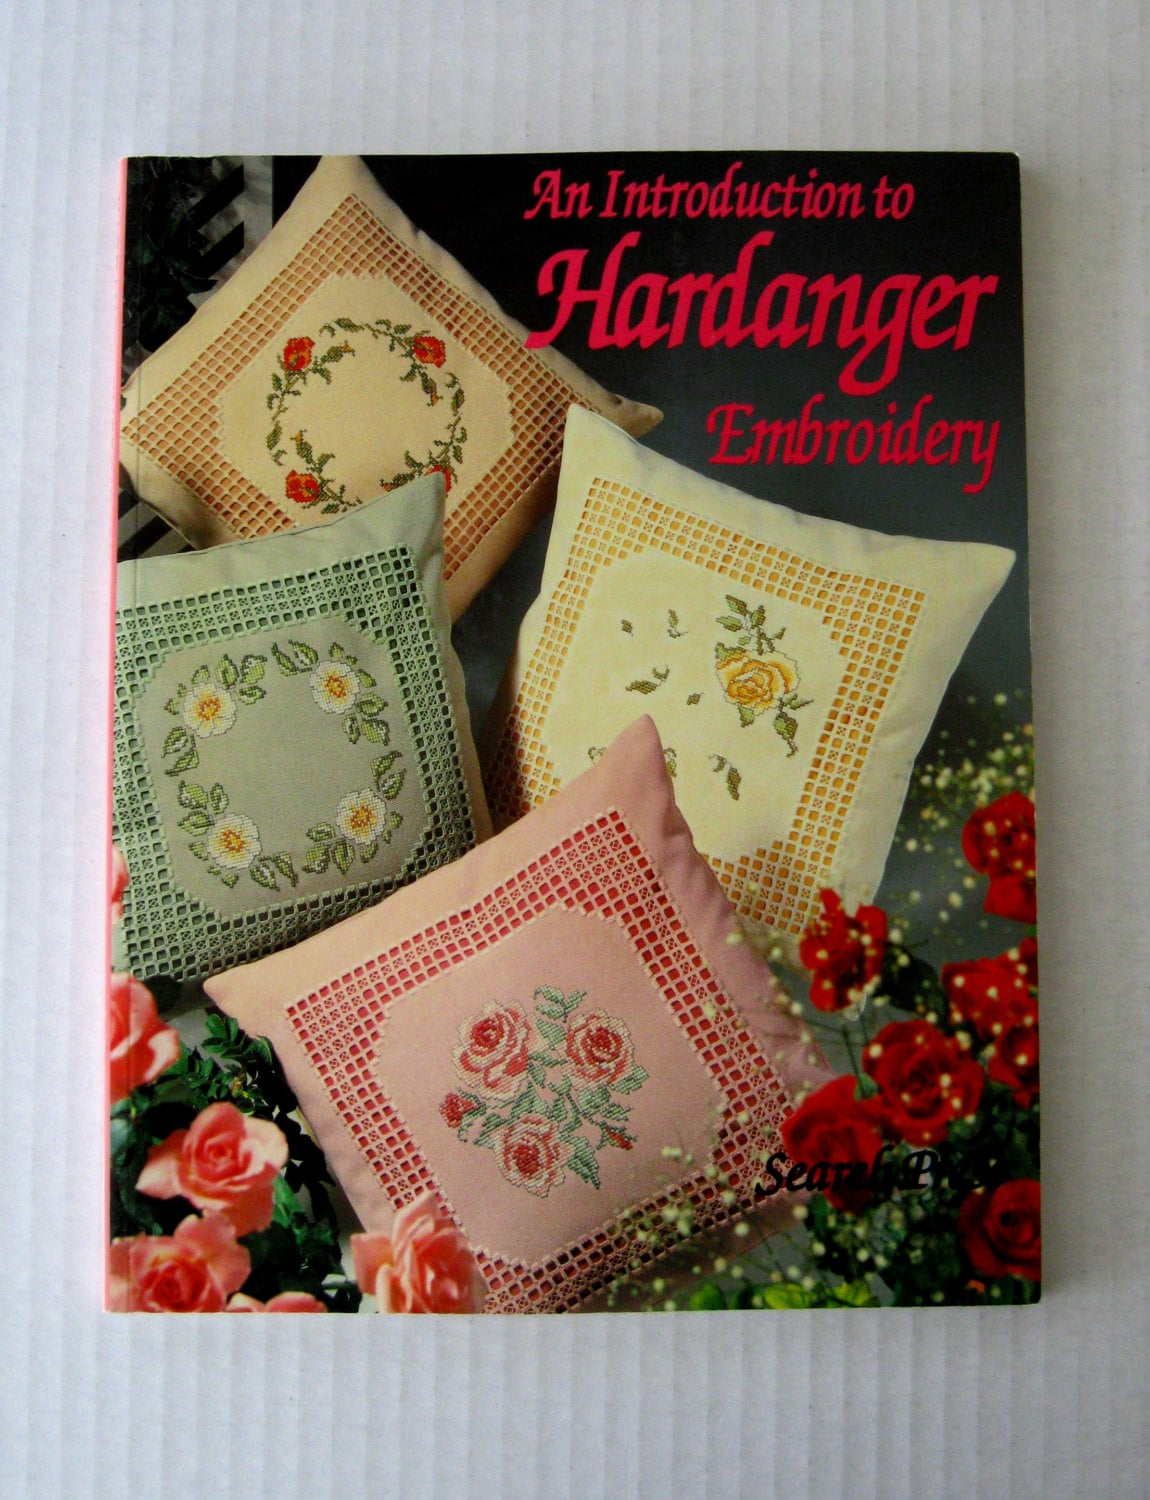 Hardanger Embroidery An Introduction to 88 pgs by QuiltCitySue